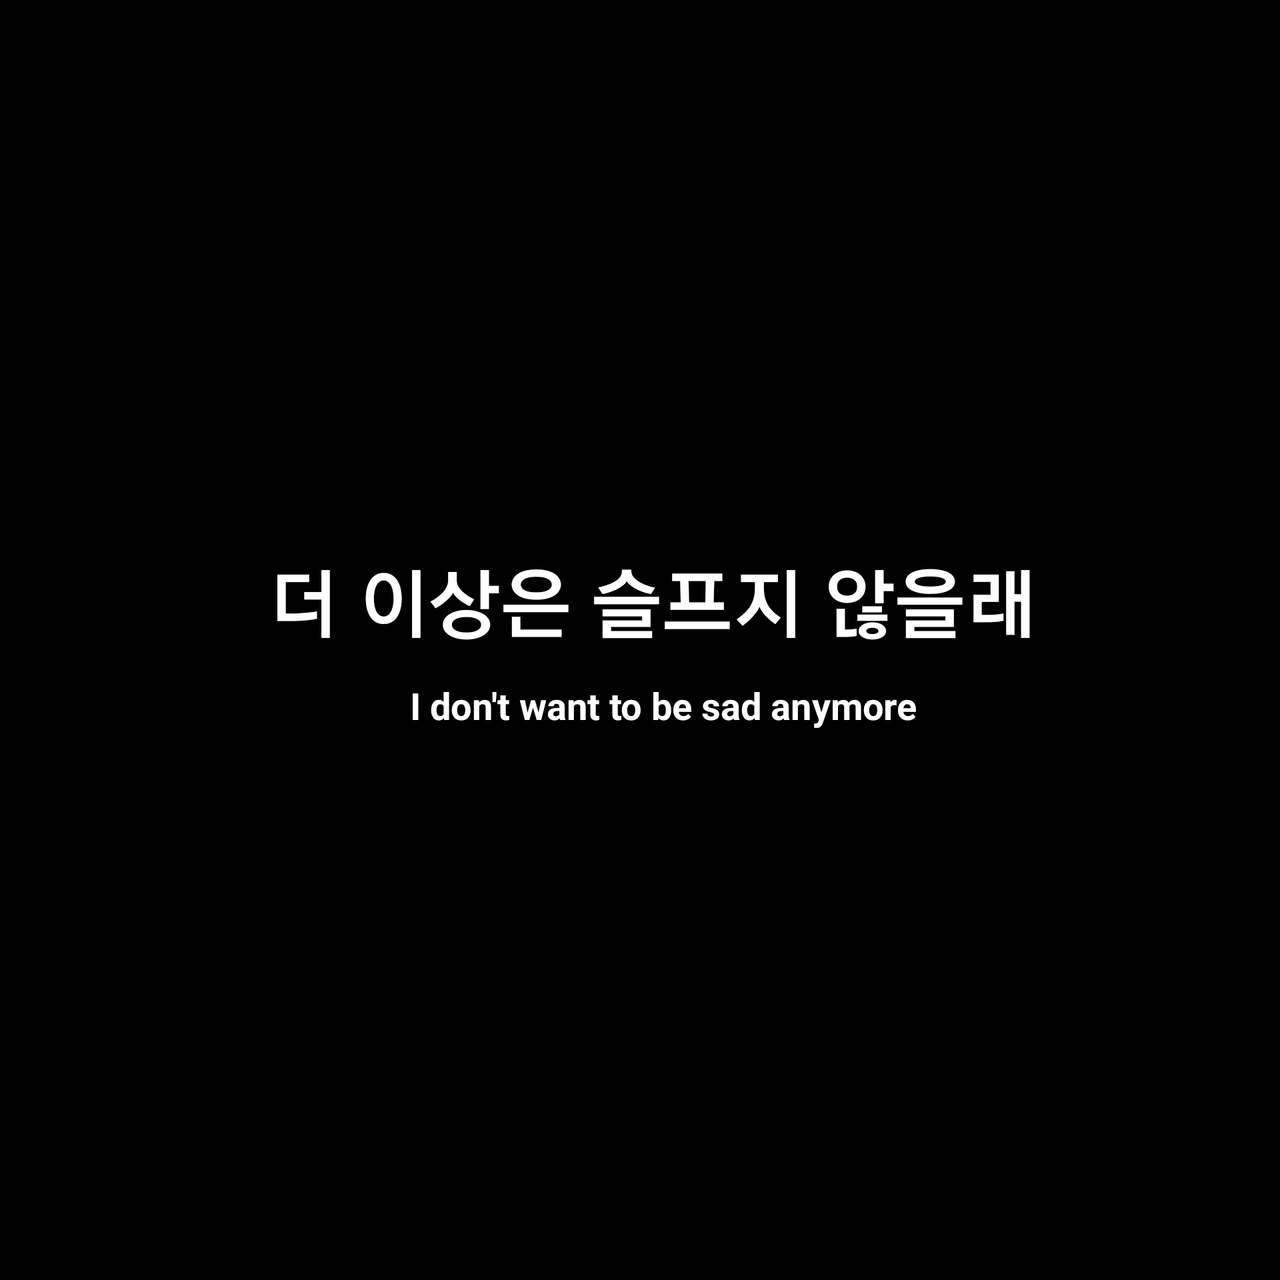 korean quotes images on com